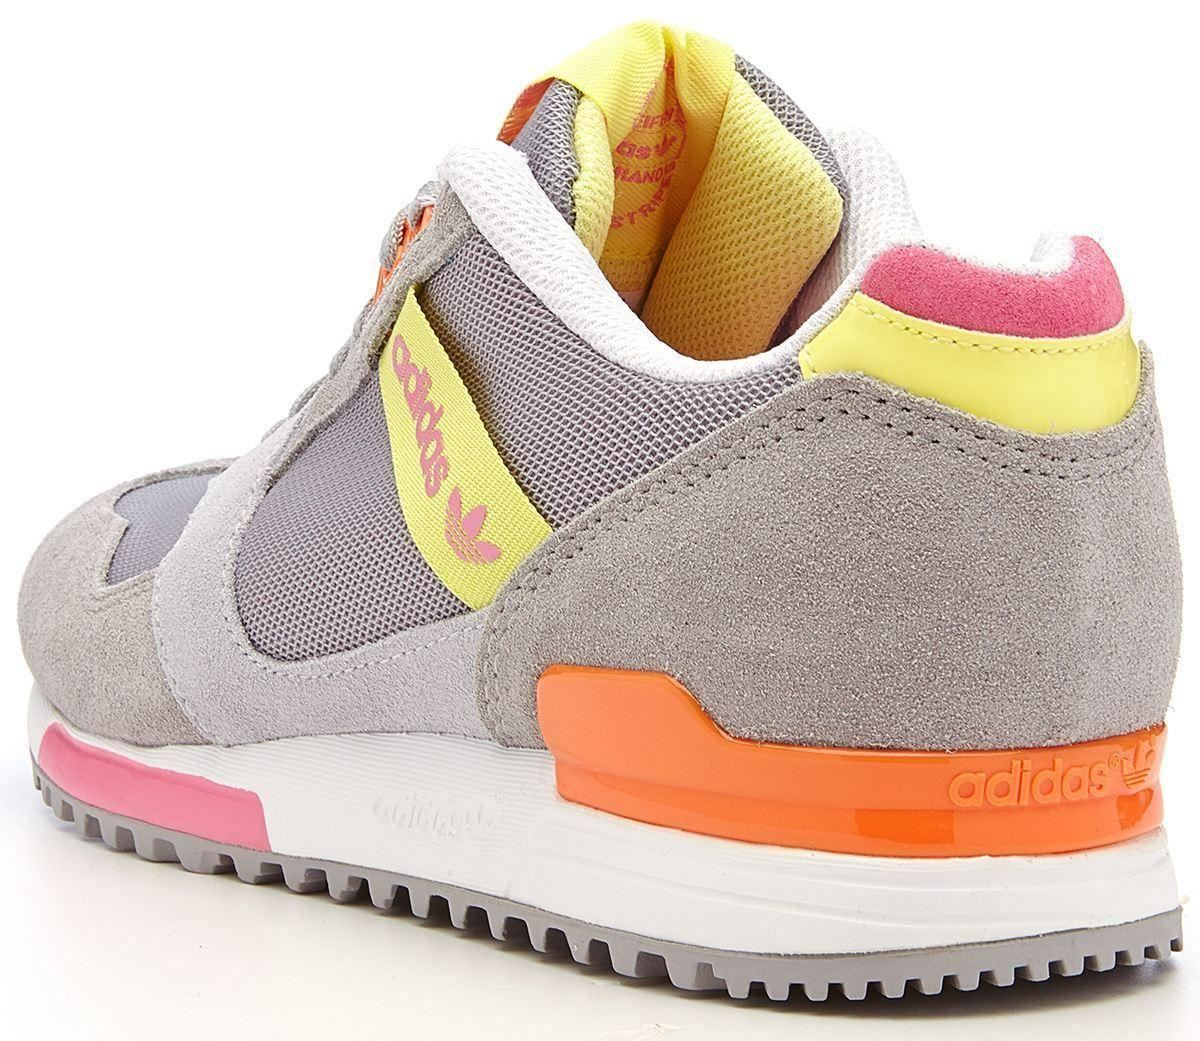 adidas originals zx 700 contemp trainers grey yellow. Black Bedroom Furniture Sets. Home Design Ideas